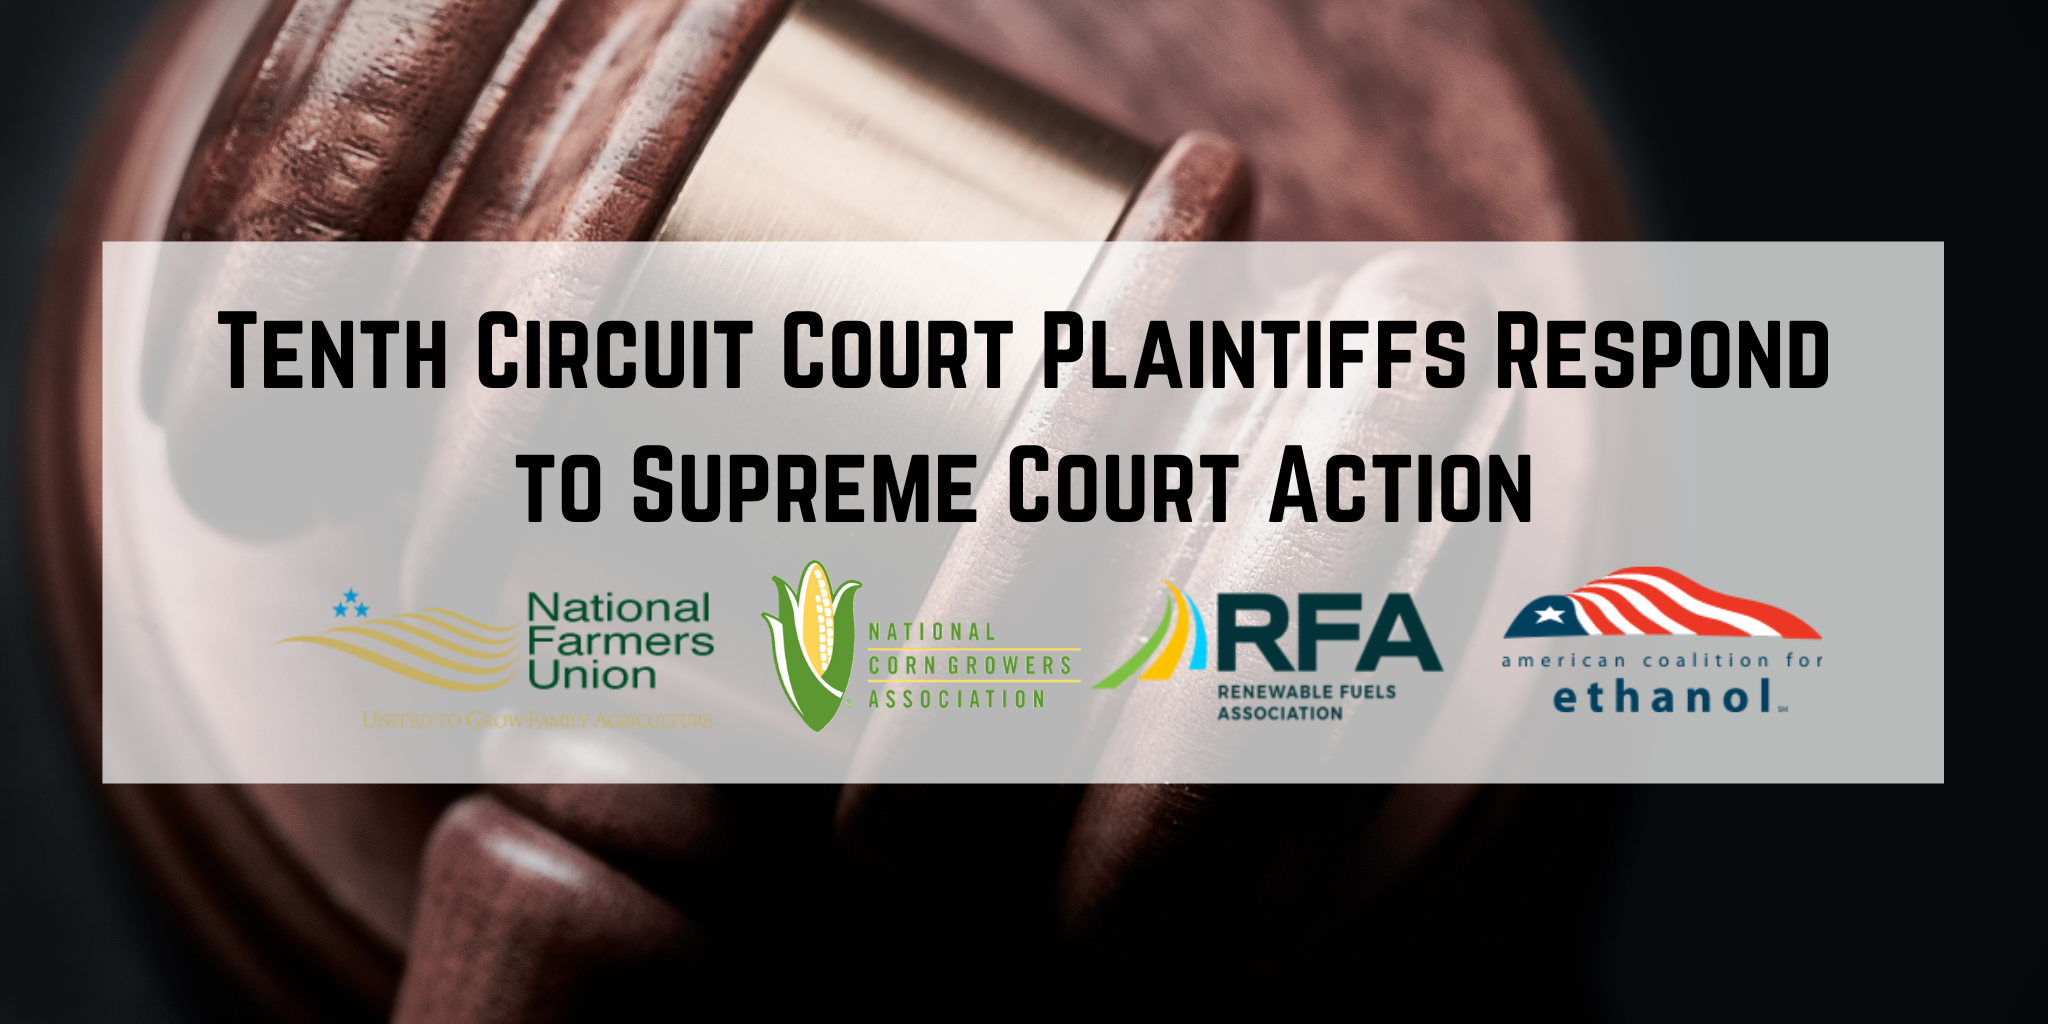 Tenth Circuit Court Plaintiffs Respond to Supreme Court Action